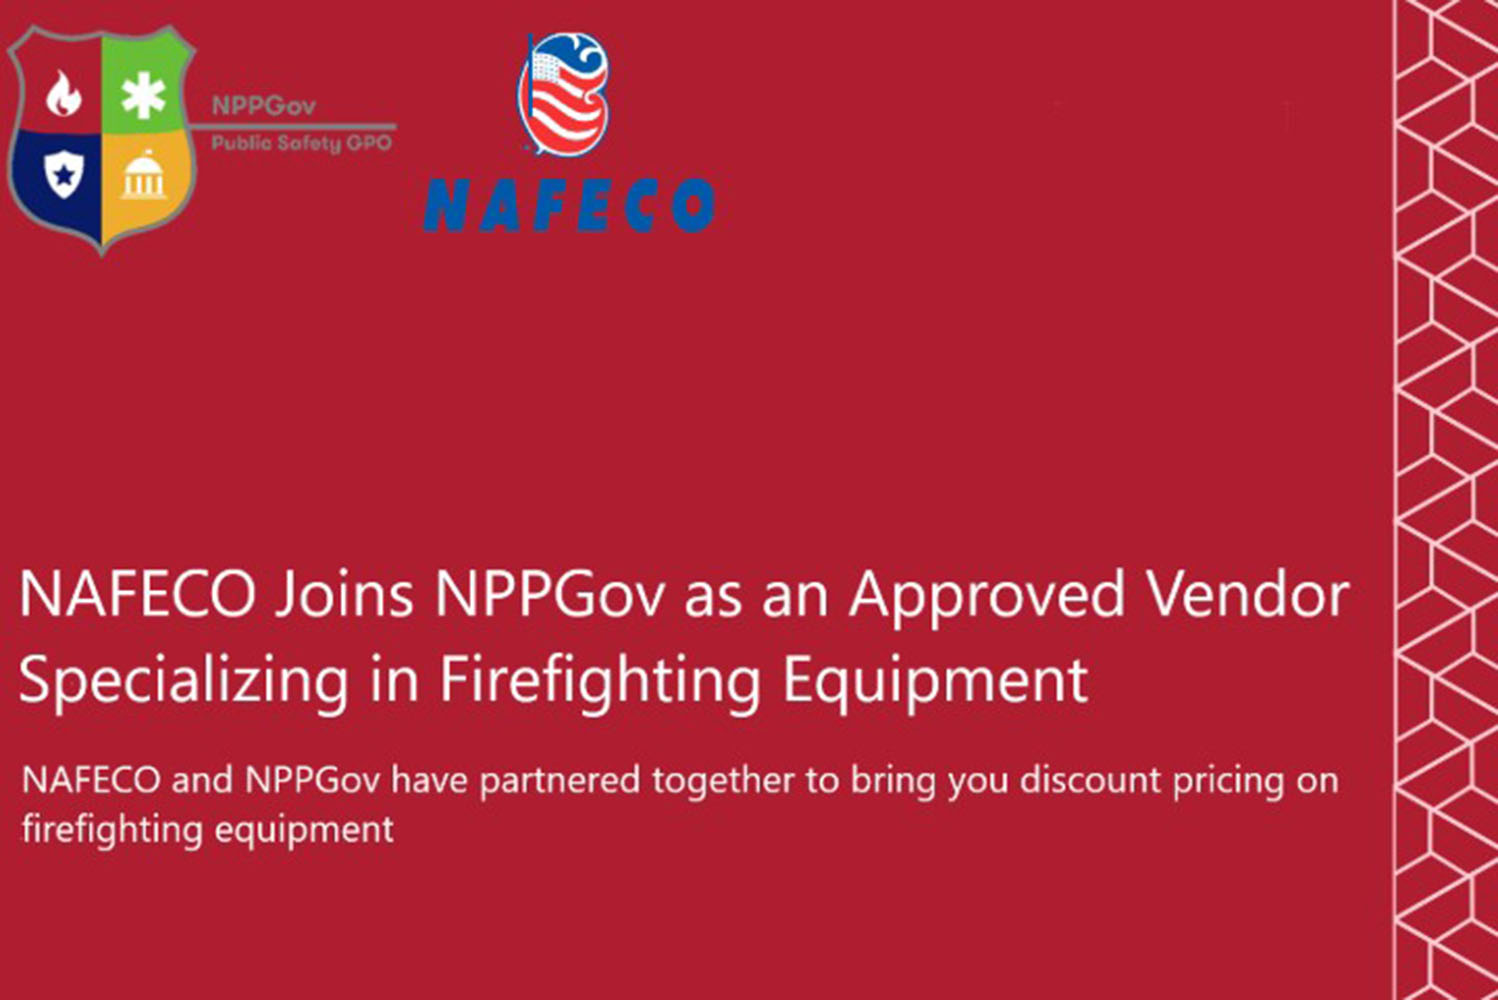 NAFECO Joins NPPGov as Vendor for PPE